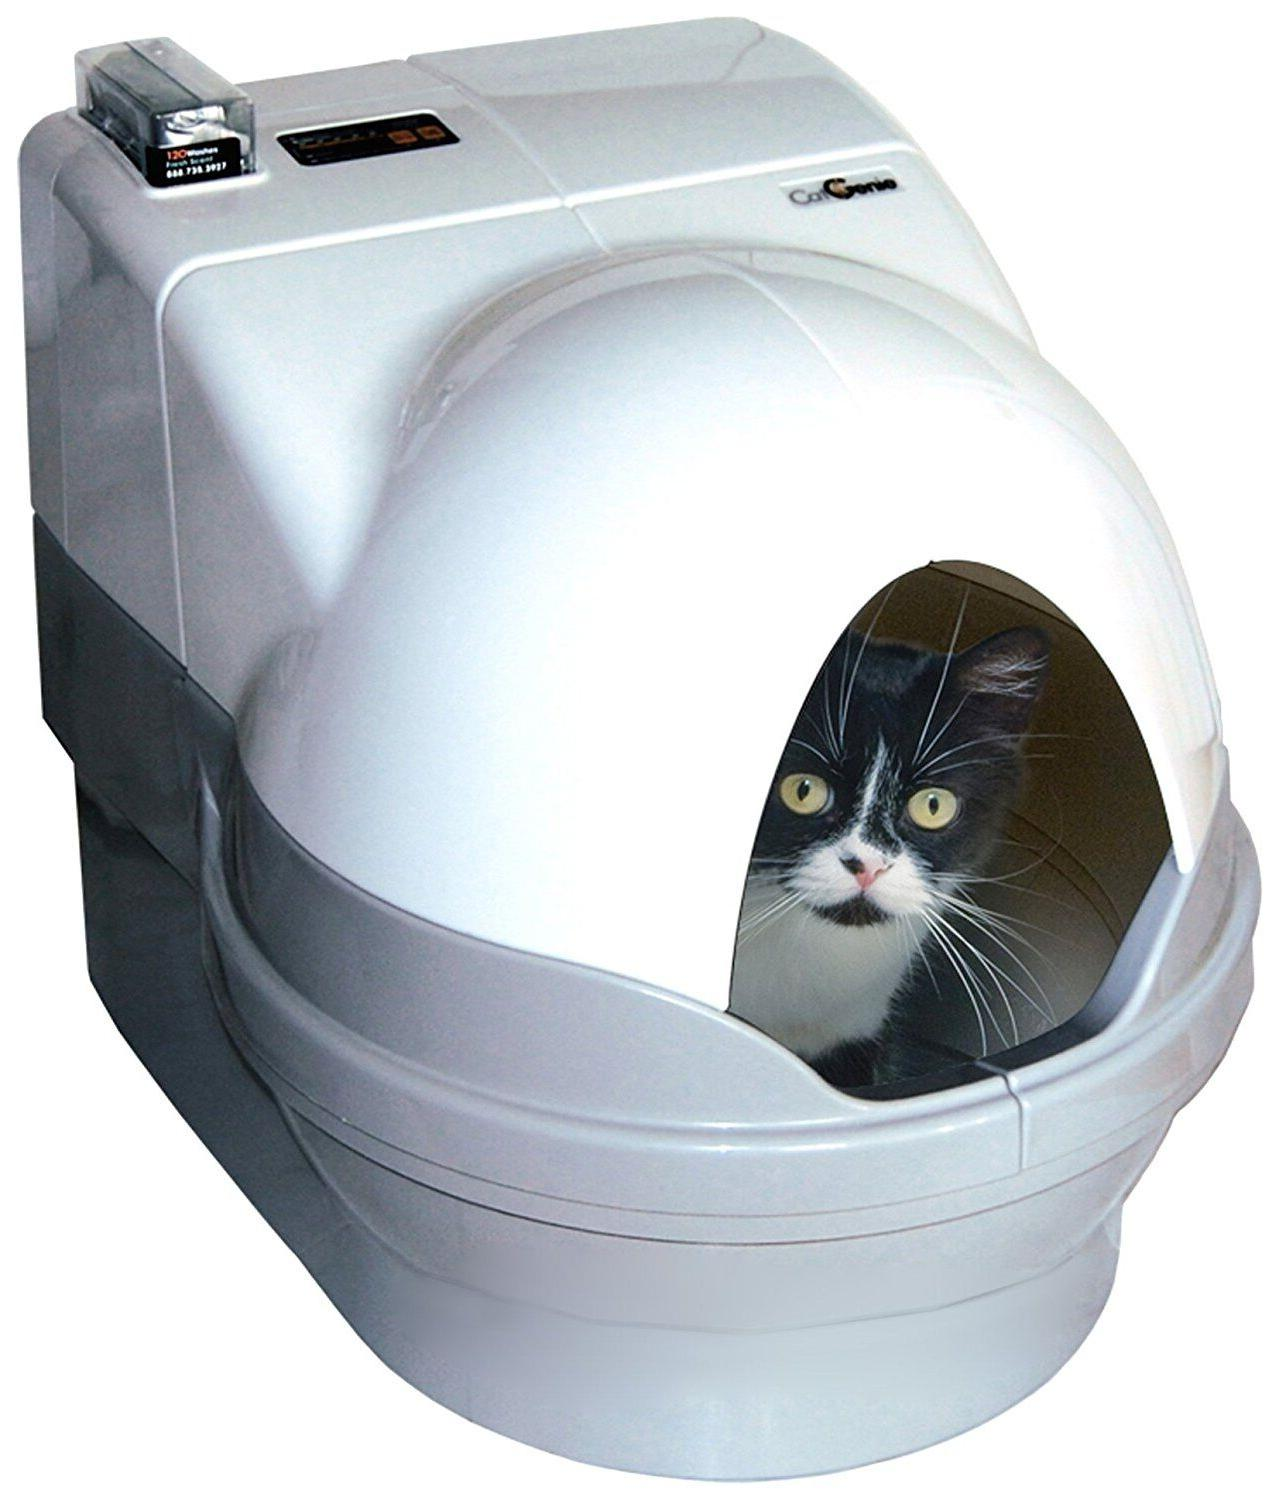 Self-Cleaning and SIDEWALLS Pets, NEW!